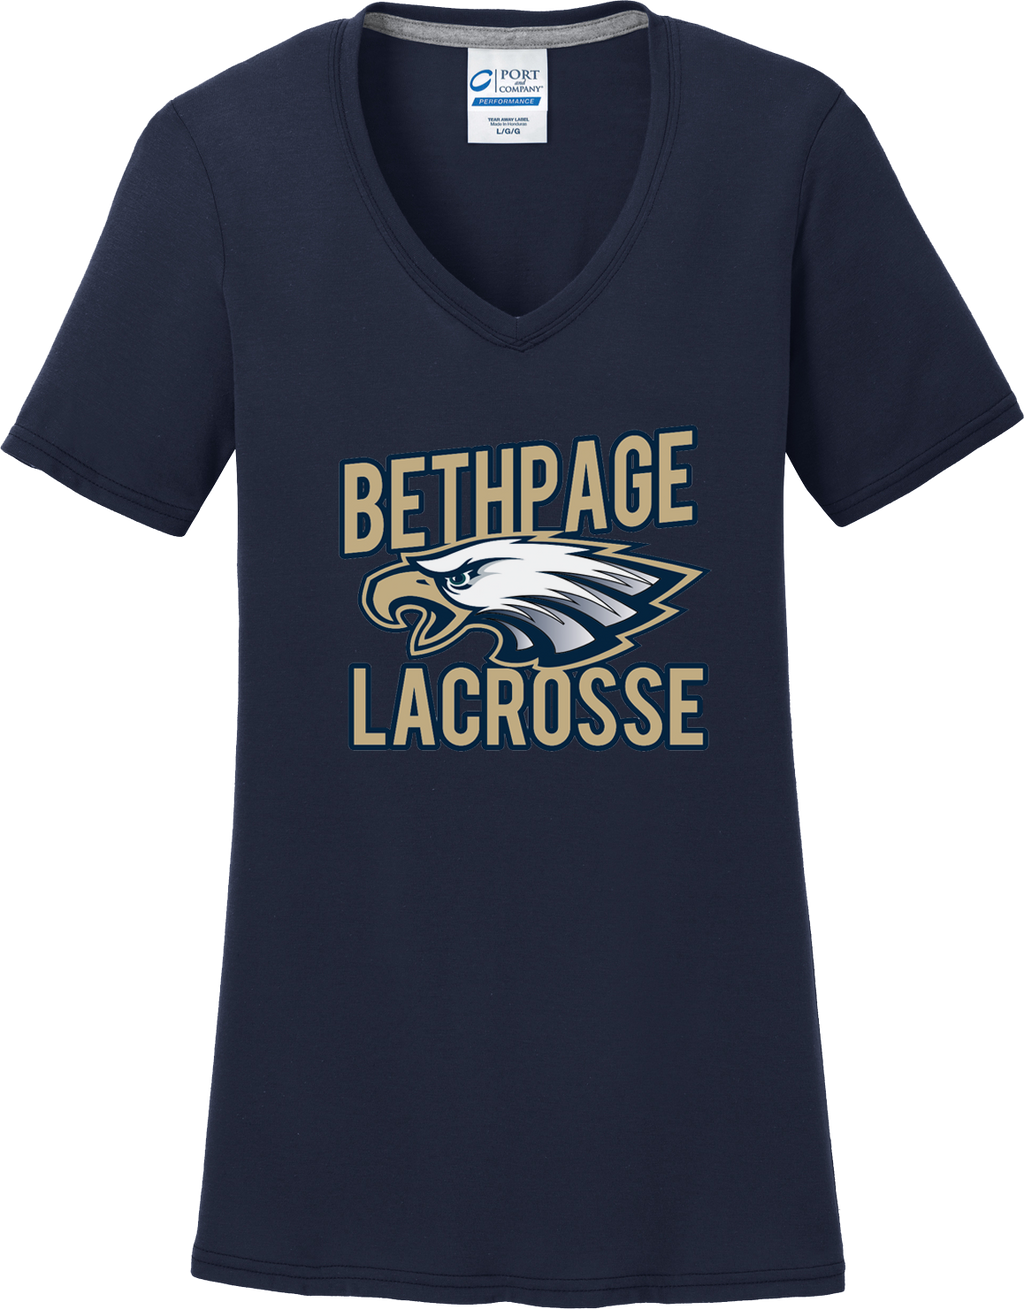 Bethpage Lacrosse Navy Women's T-Shirt